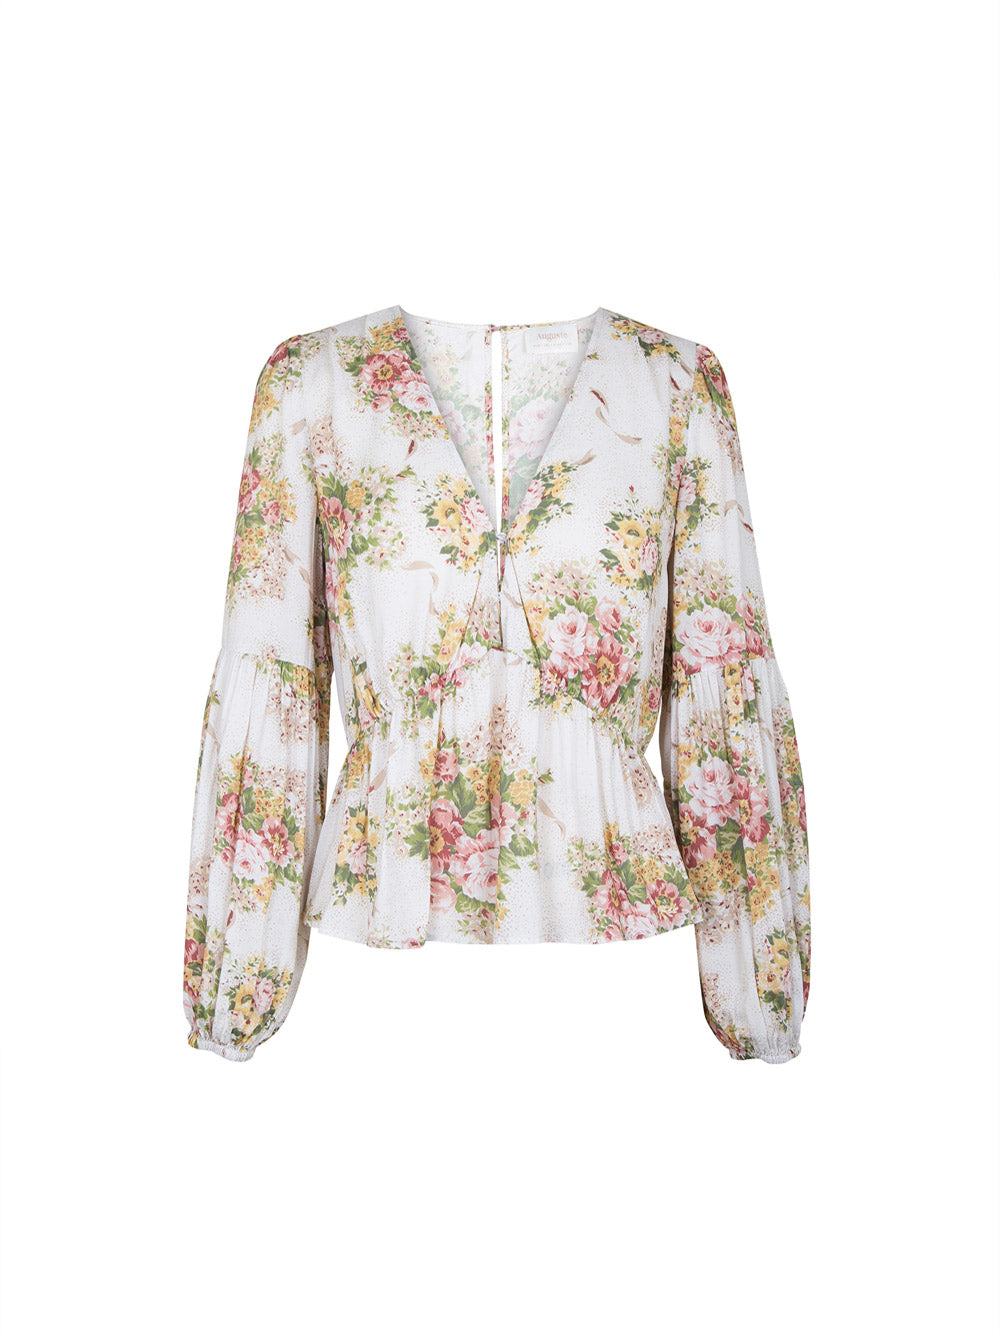 AUGUSTE Bonnie Helena Blouse - Off White